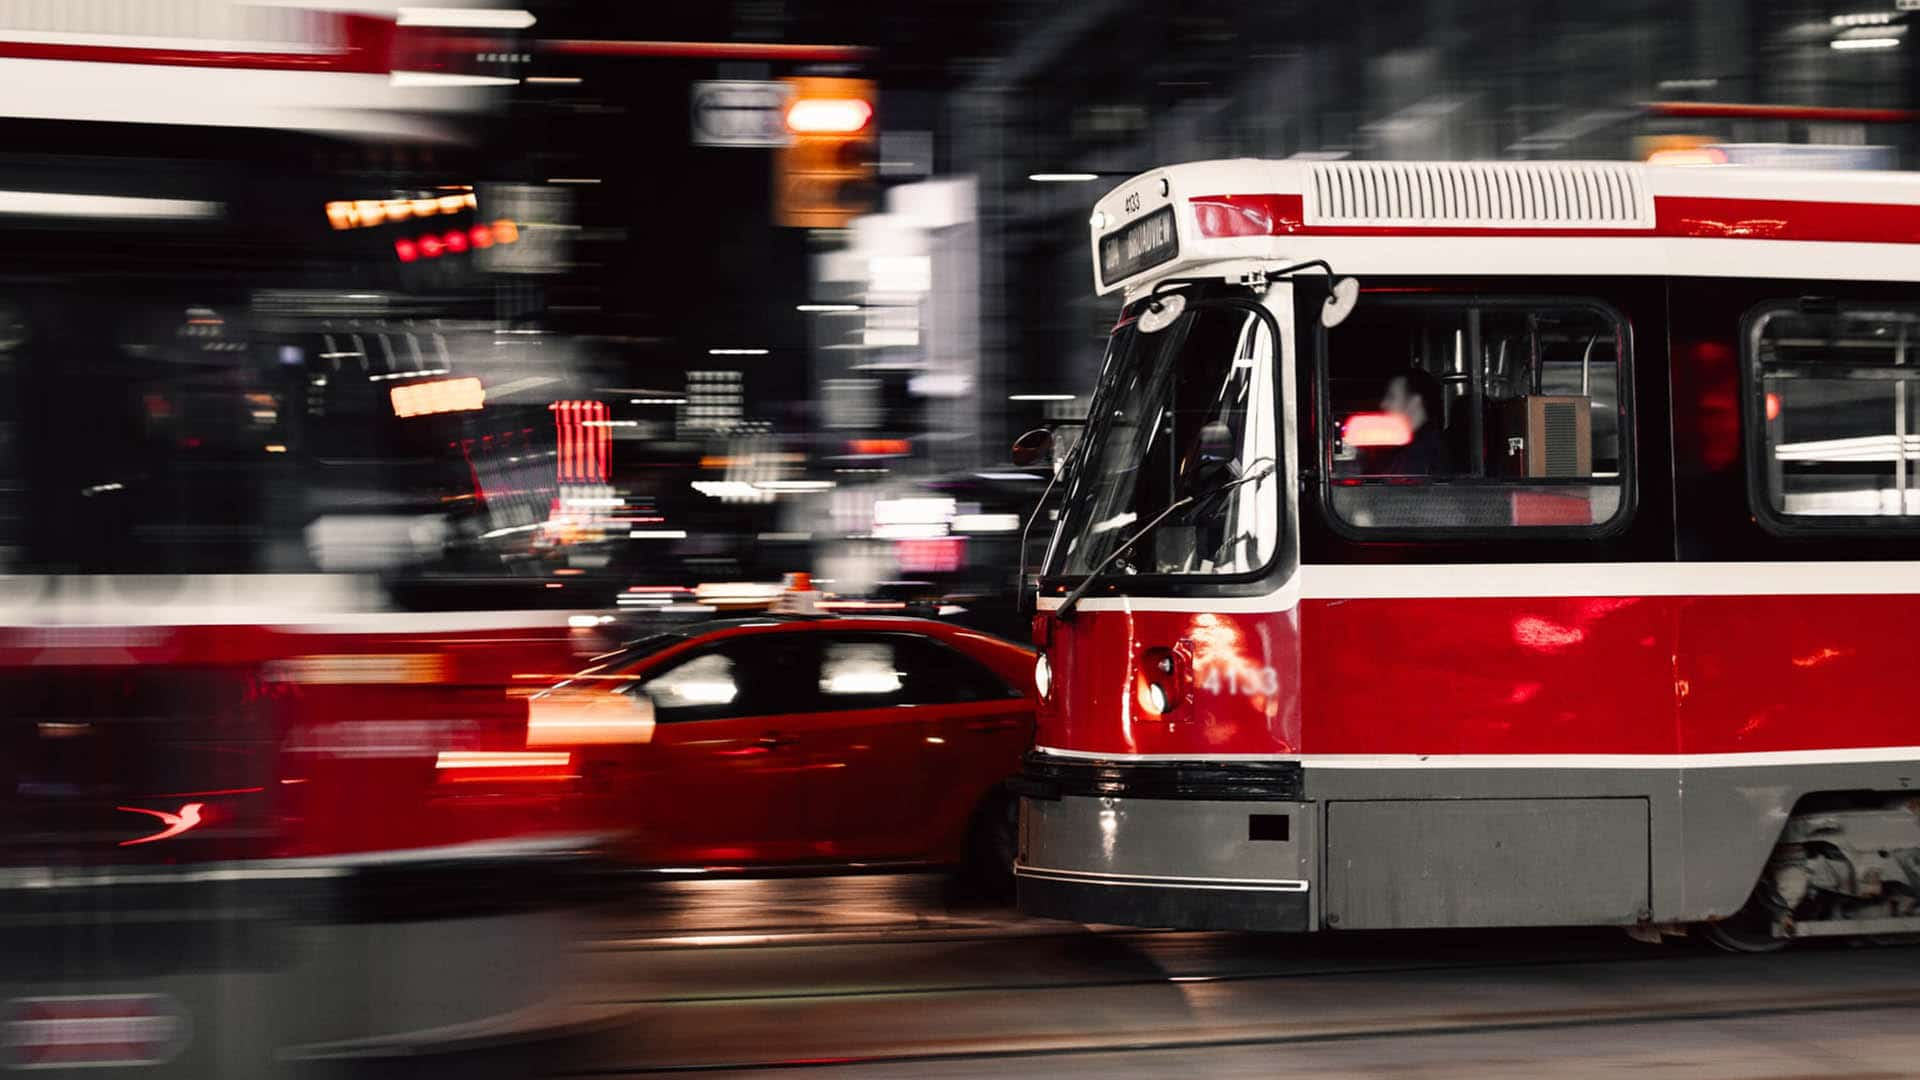 Injured By A Public Transit Vehicle? Special Rules Apply Deanna Gilbert